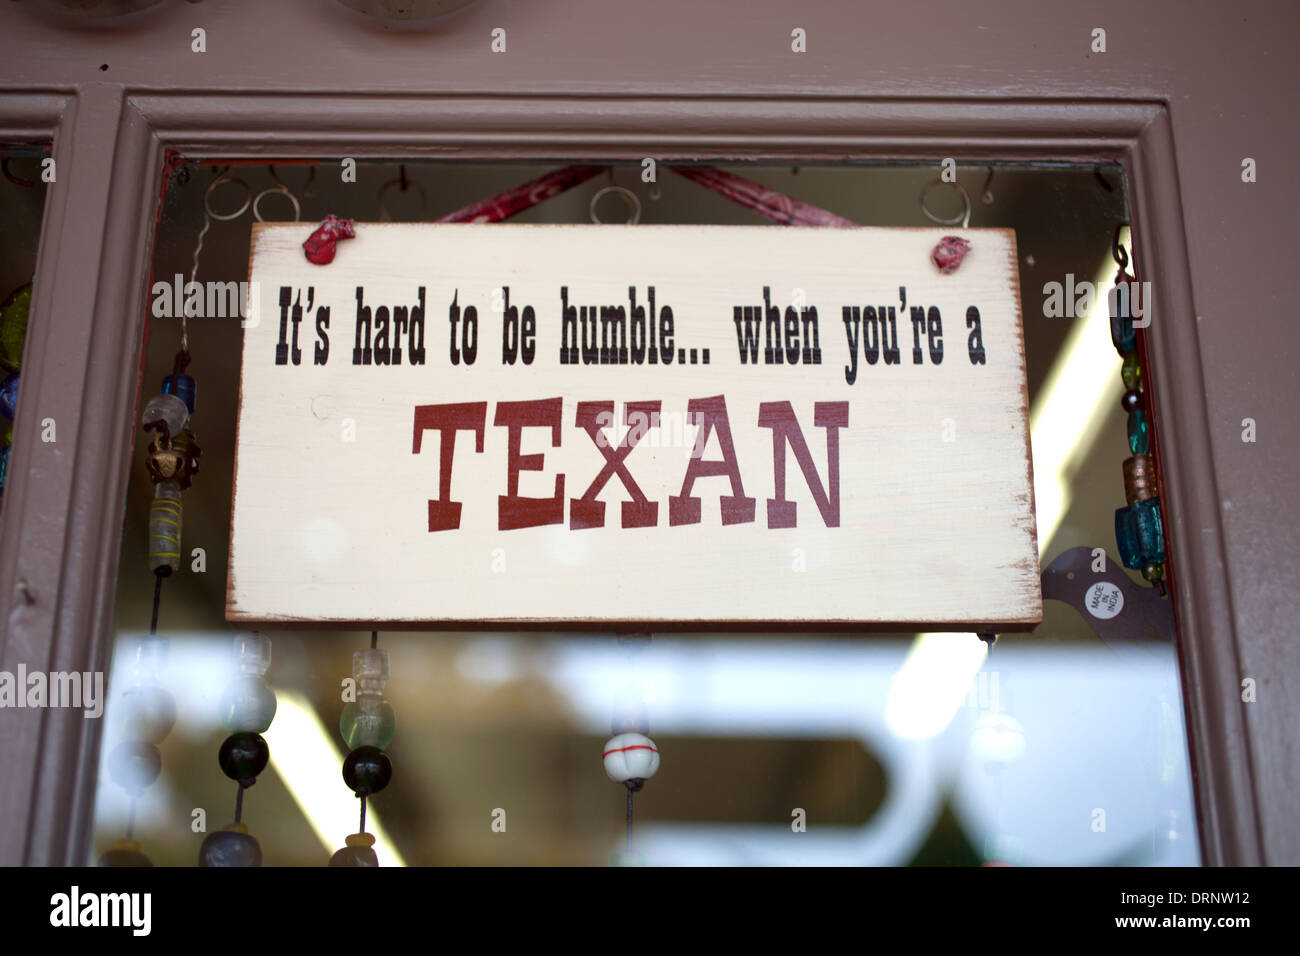 A sign reading 'It´s hard to be humble…when you´re a Texan' decorates a window in South Dallas, Texas, United States - Stock Image